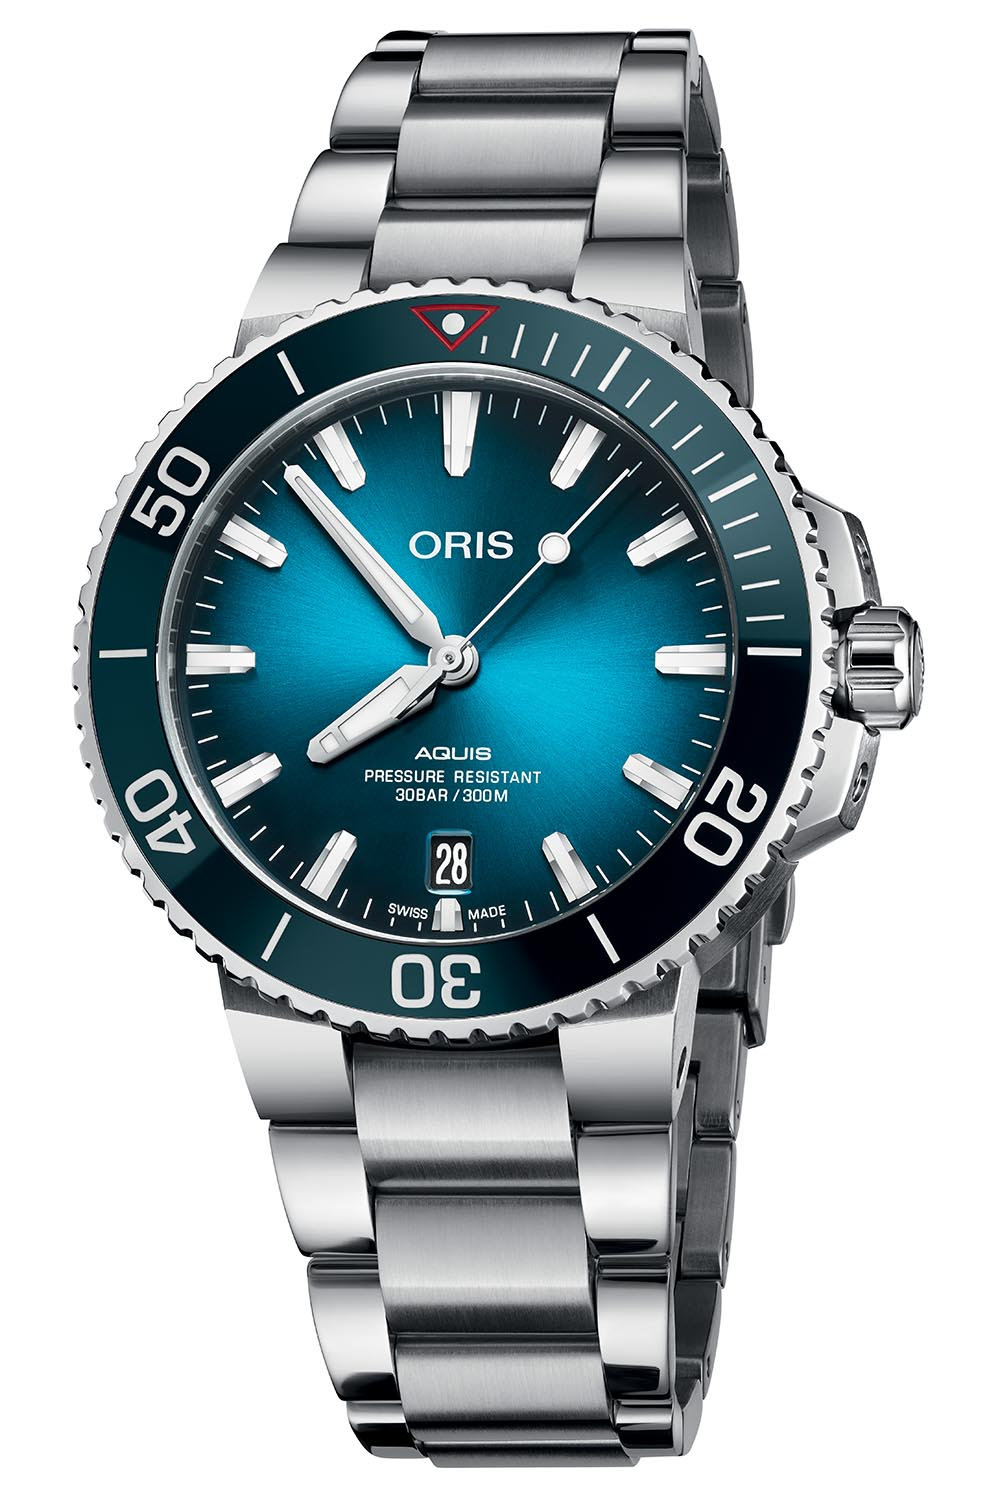 Oris Ocean Trilogy - Oris Clean Ocean Limited Edition watch